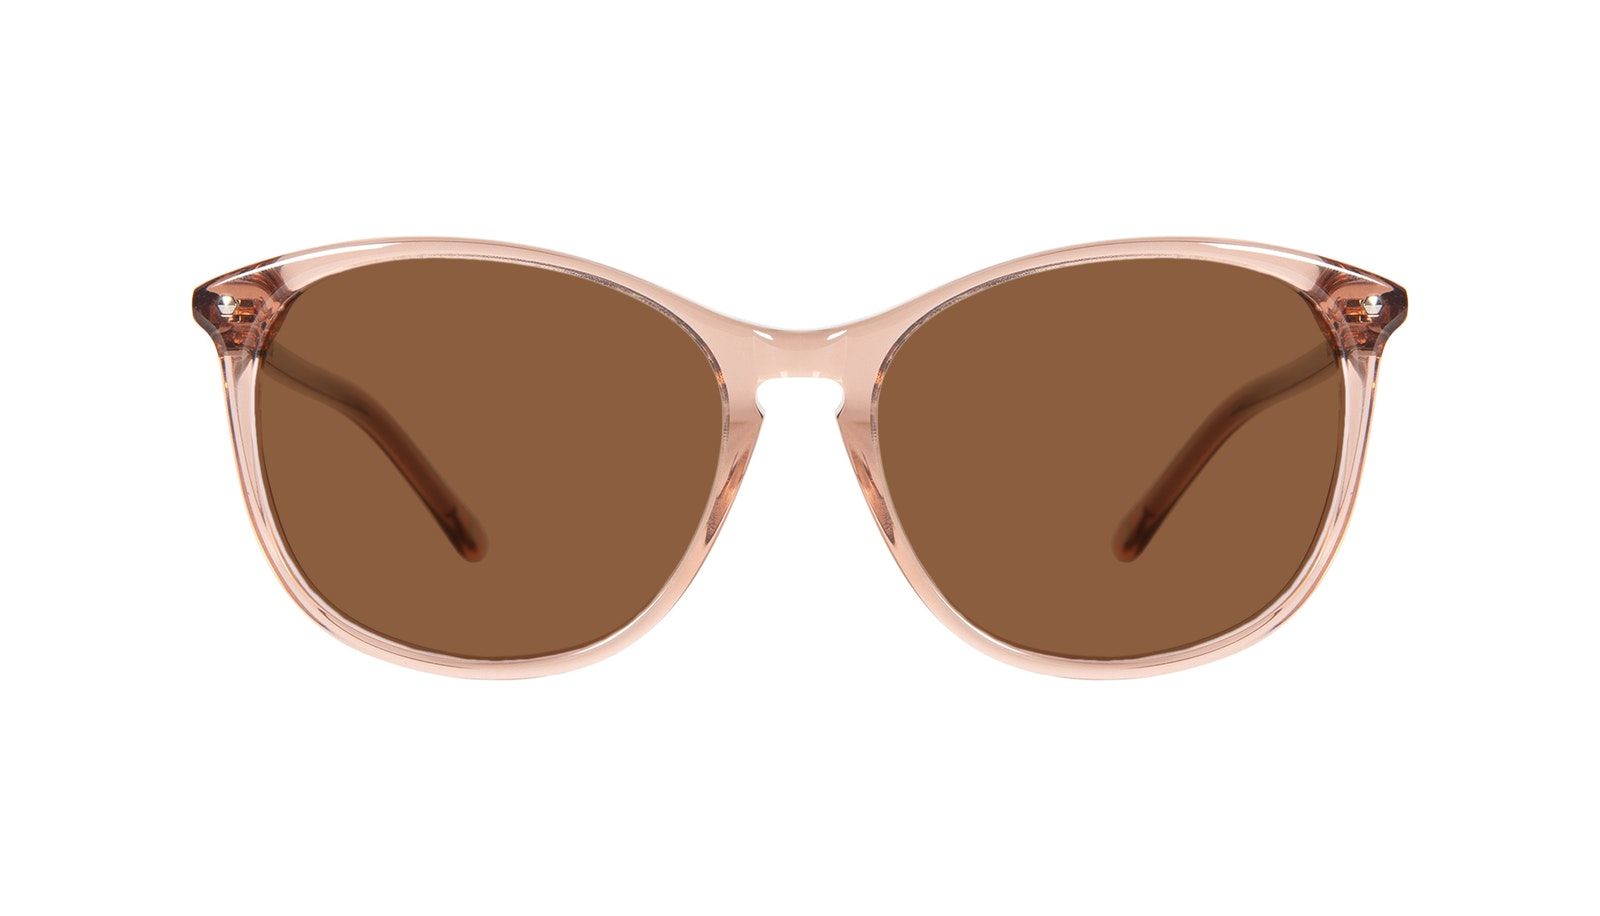 Affordable Fashion Glasses Round Sunglasses Women Nadine Petite Rose